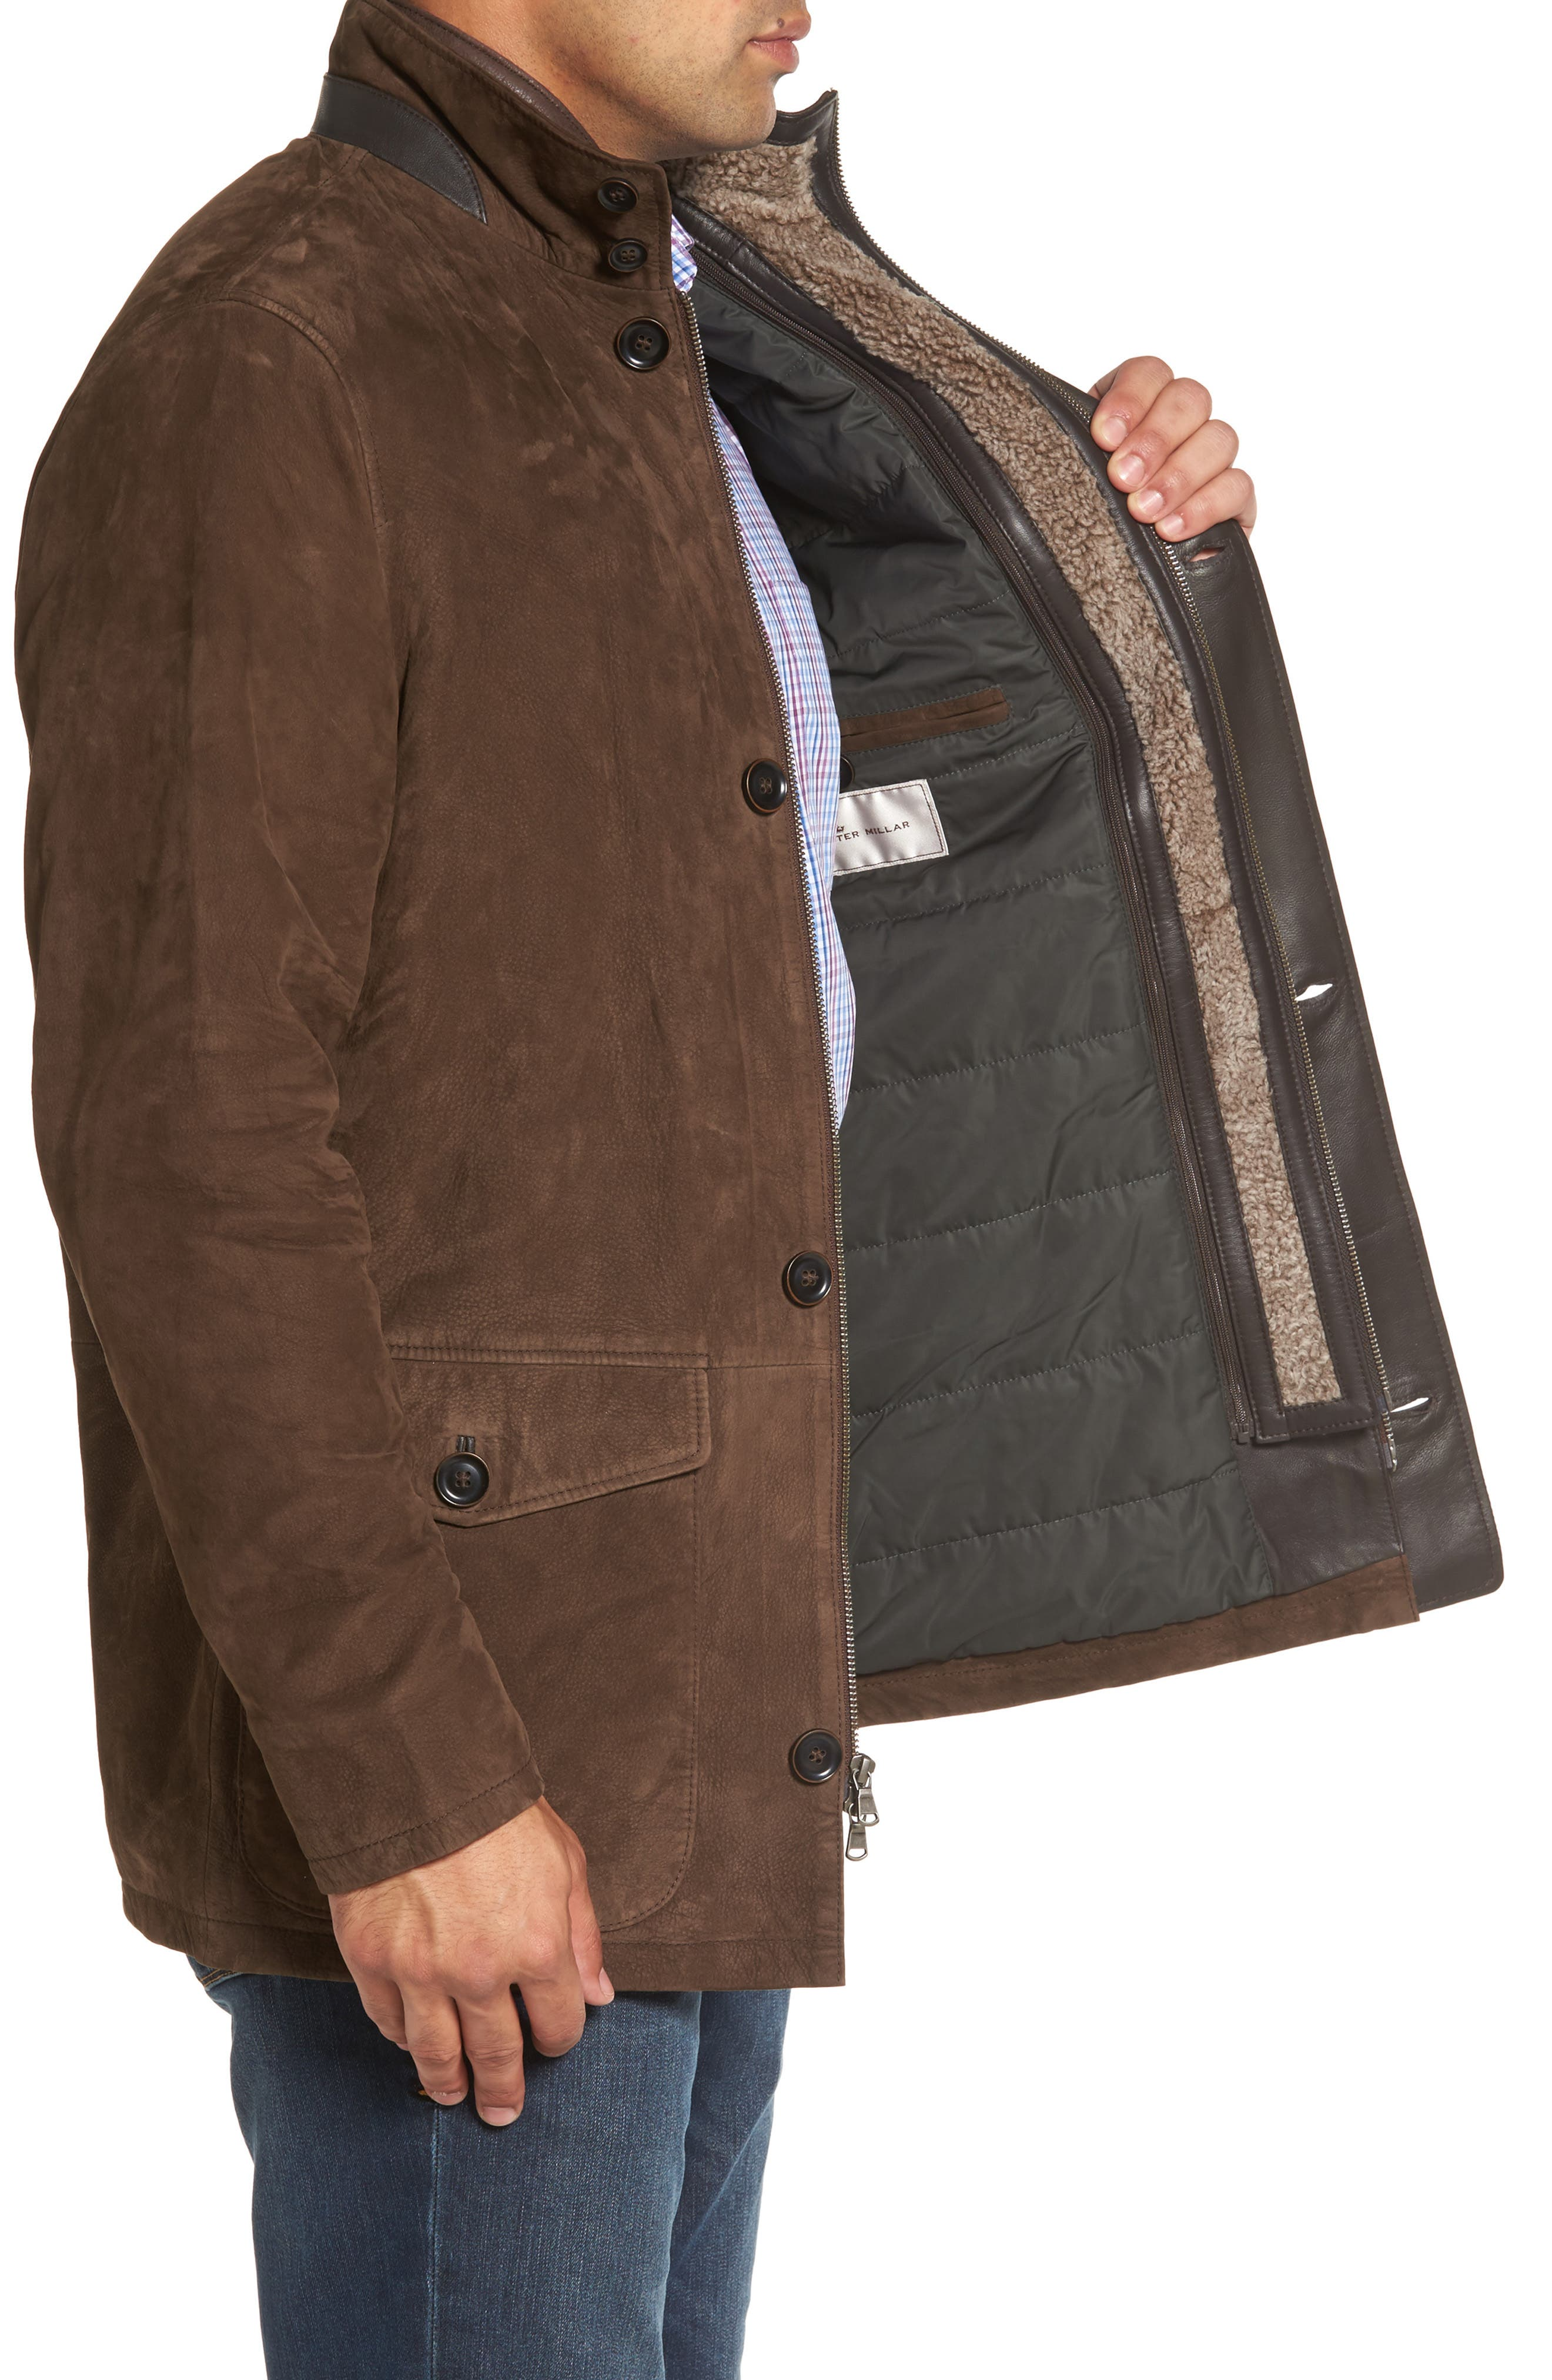 Alternate Image 4  - Peter Millar Steamboat Leather Jacket with Genuine Shearling Lined Bib